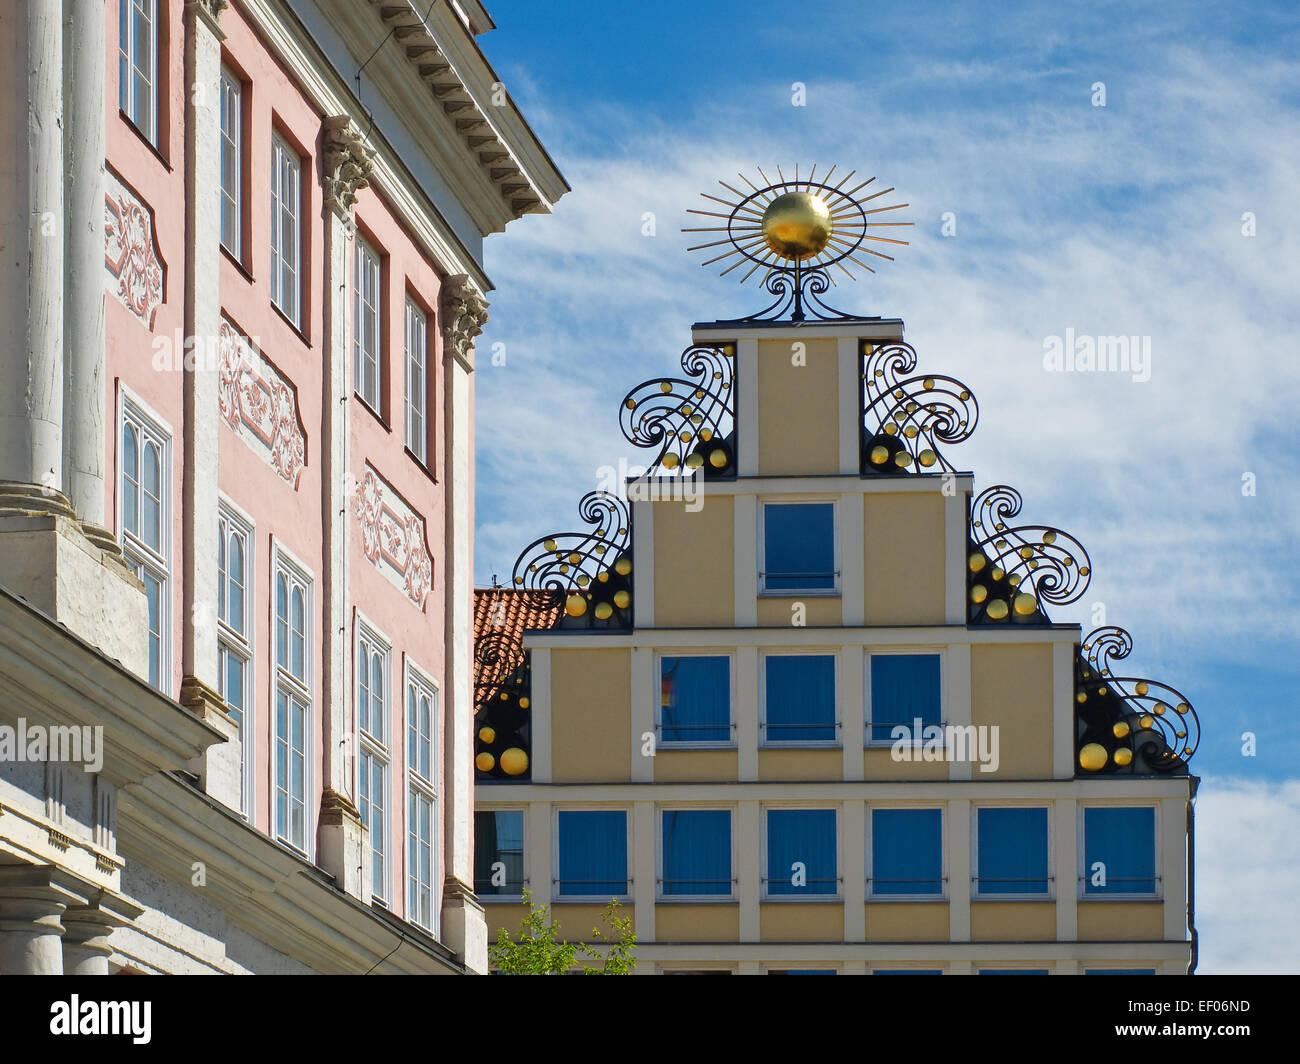 Gable of the house Sun in Rostock. - Stock Image